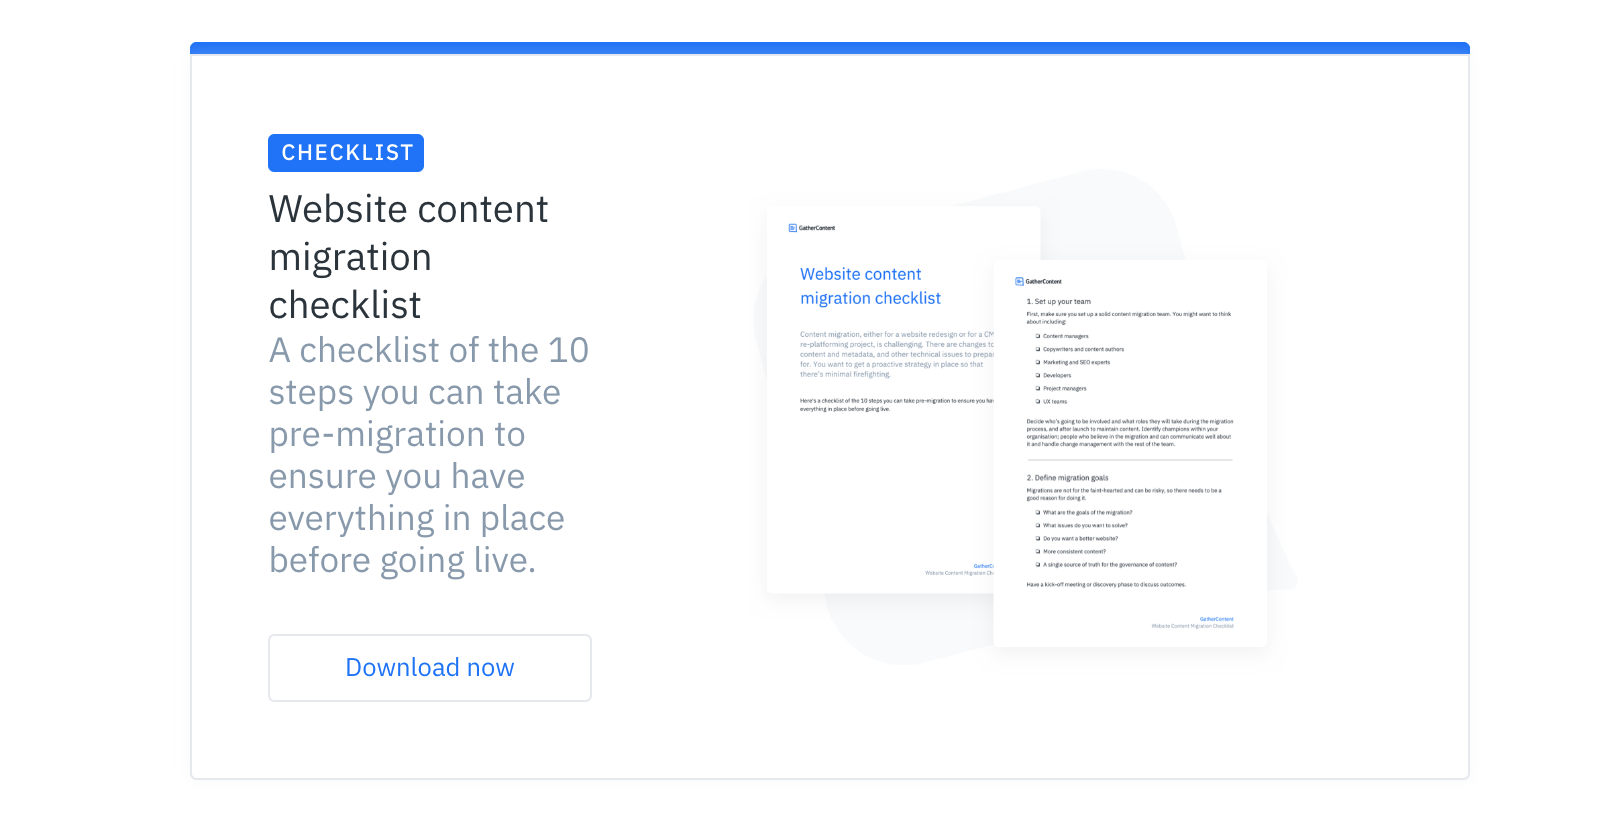 An image of a full width advert at the bottom of an article on the GatherContent blog. This one promotes a checklist and has a description and image of the checklist with a call to action to download.